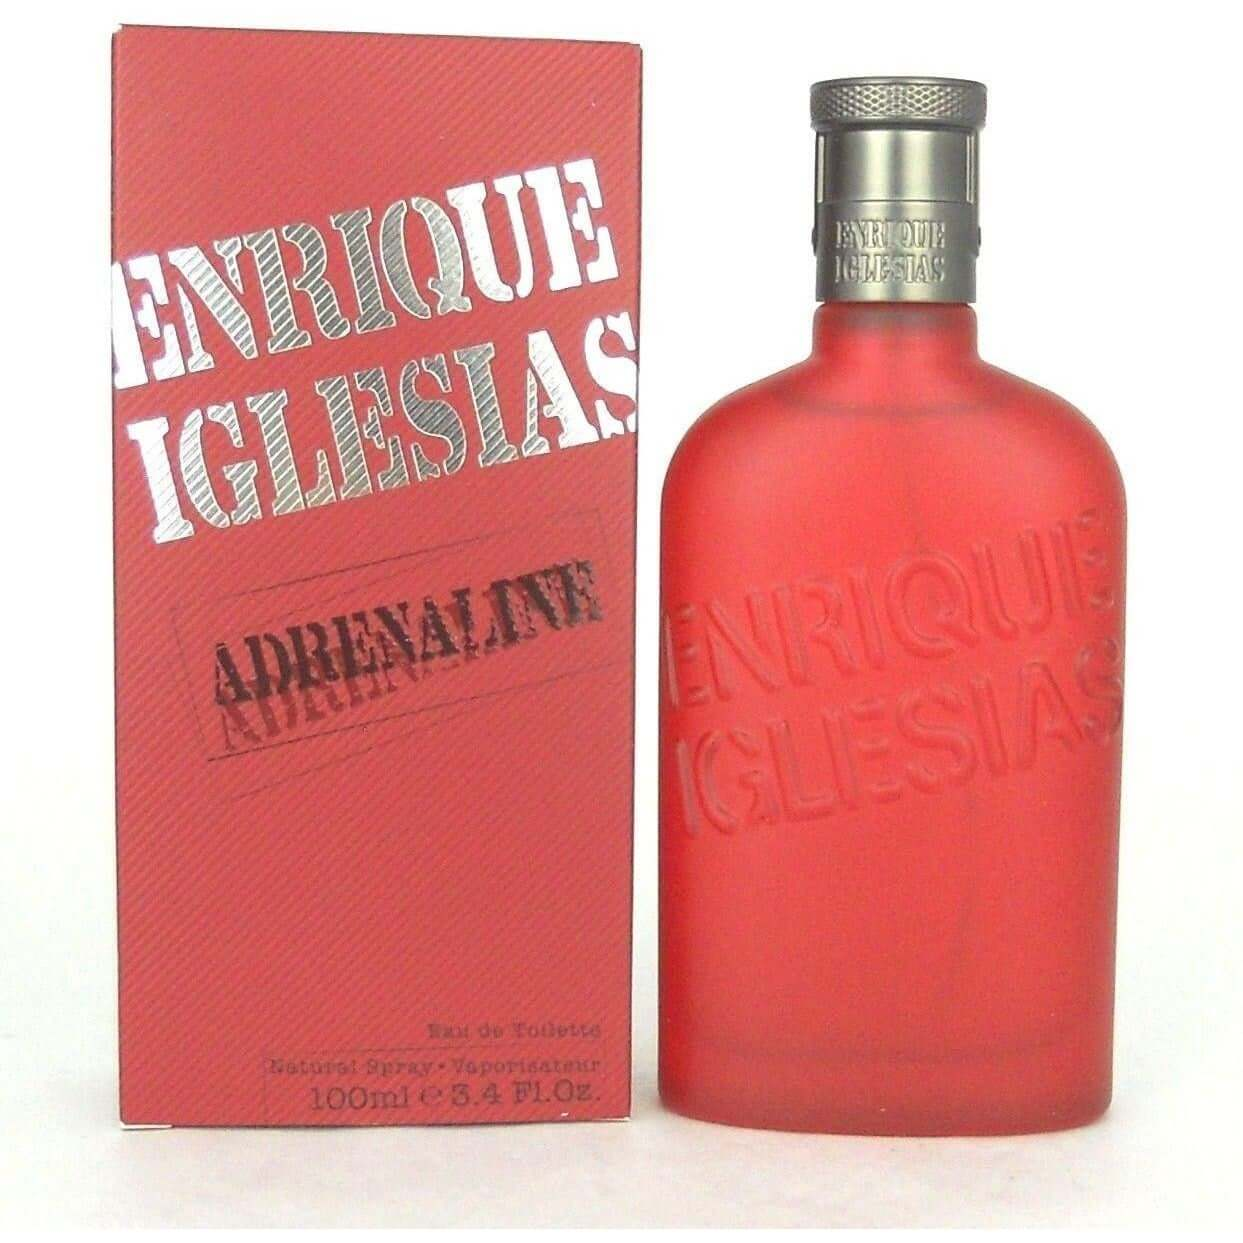 adrenaline-enrique-iglesias-men-cologne-edt-3-4-oz-3-3-new-in-box